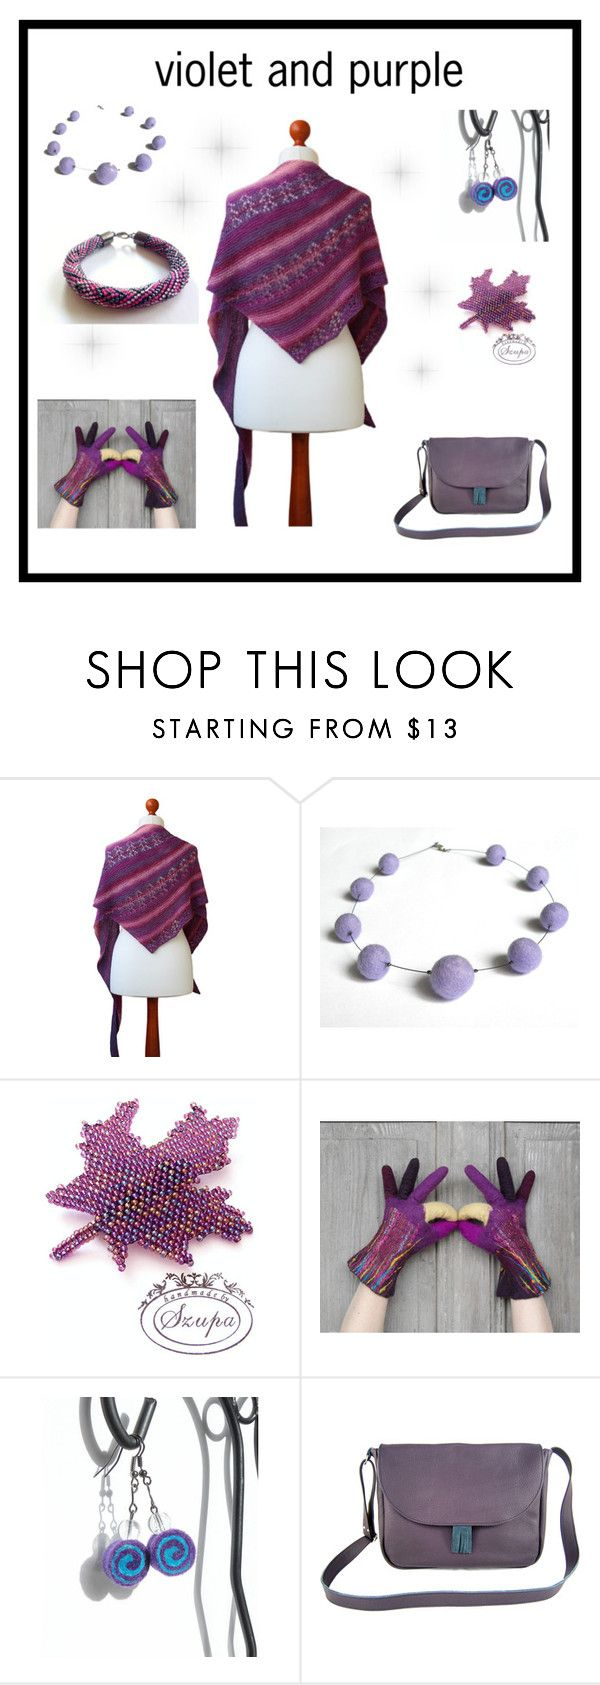 """Violet and purple"" by marudafelting ❤ liked on Polyvore featuring purple, violet, filcalki and MarudaFelting"